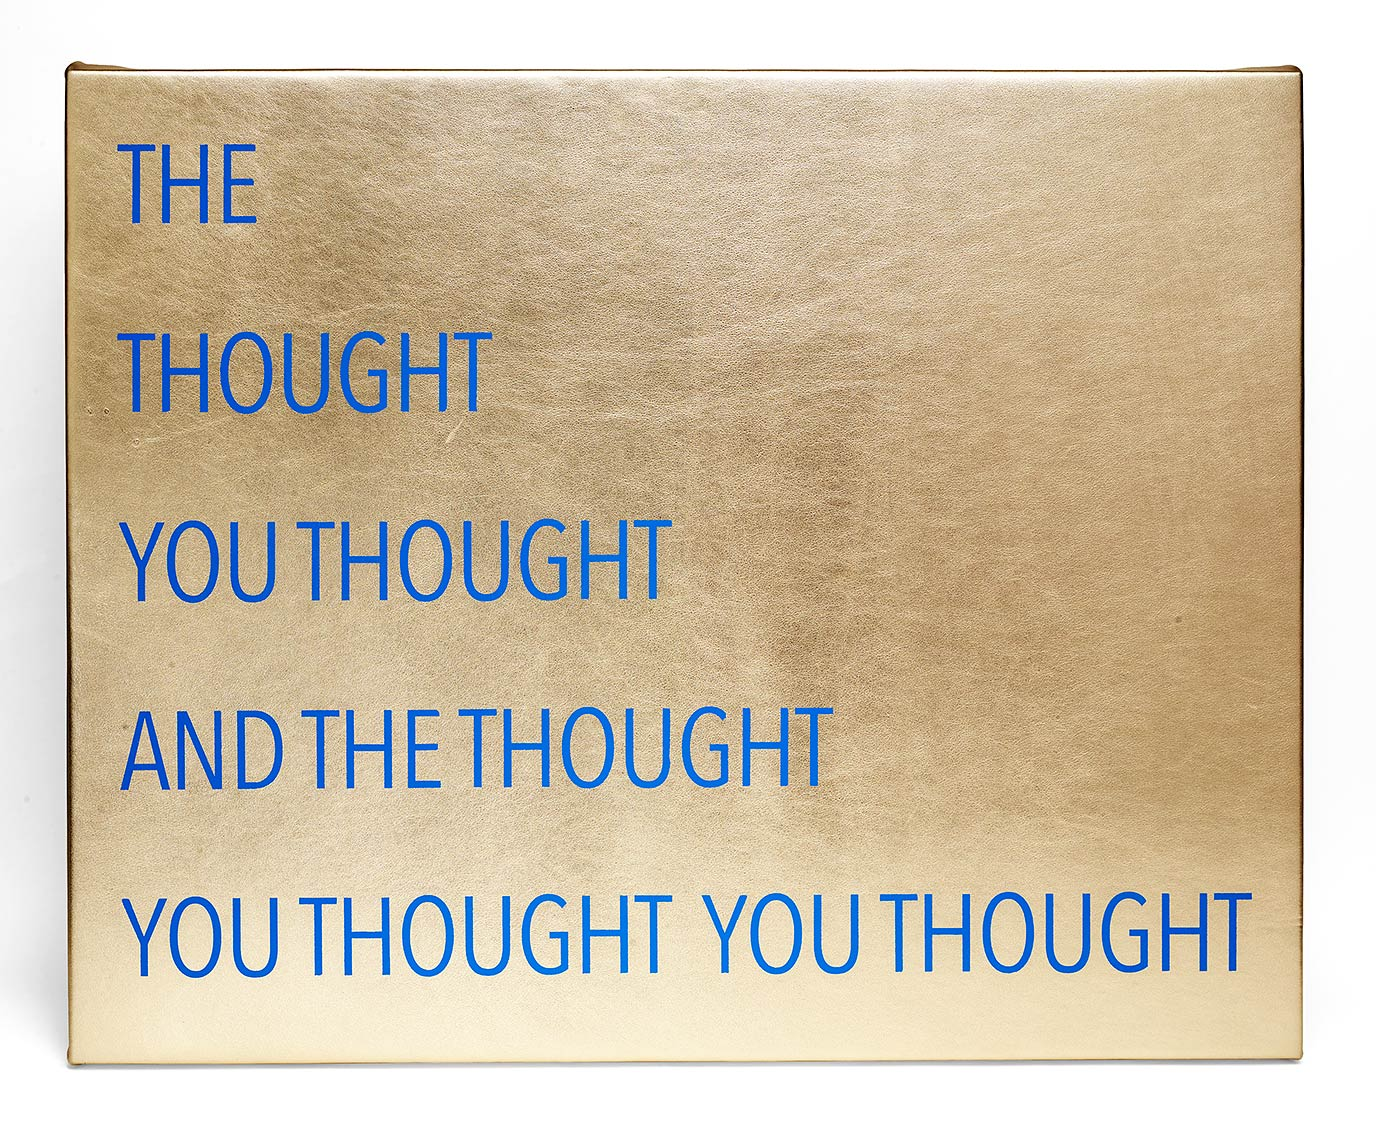 Thoughts_2015_acrylic-on-gold-foiled-leather_24-x-30-inches